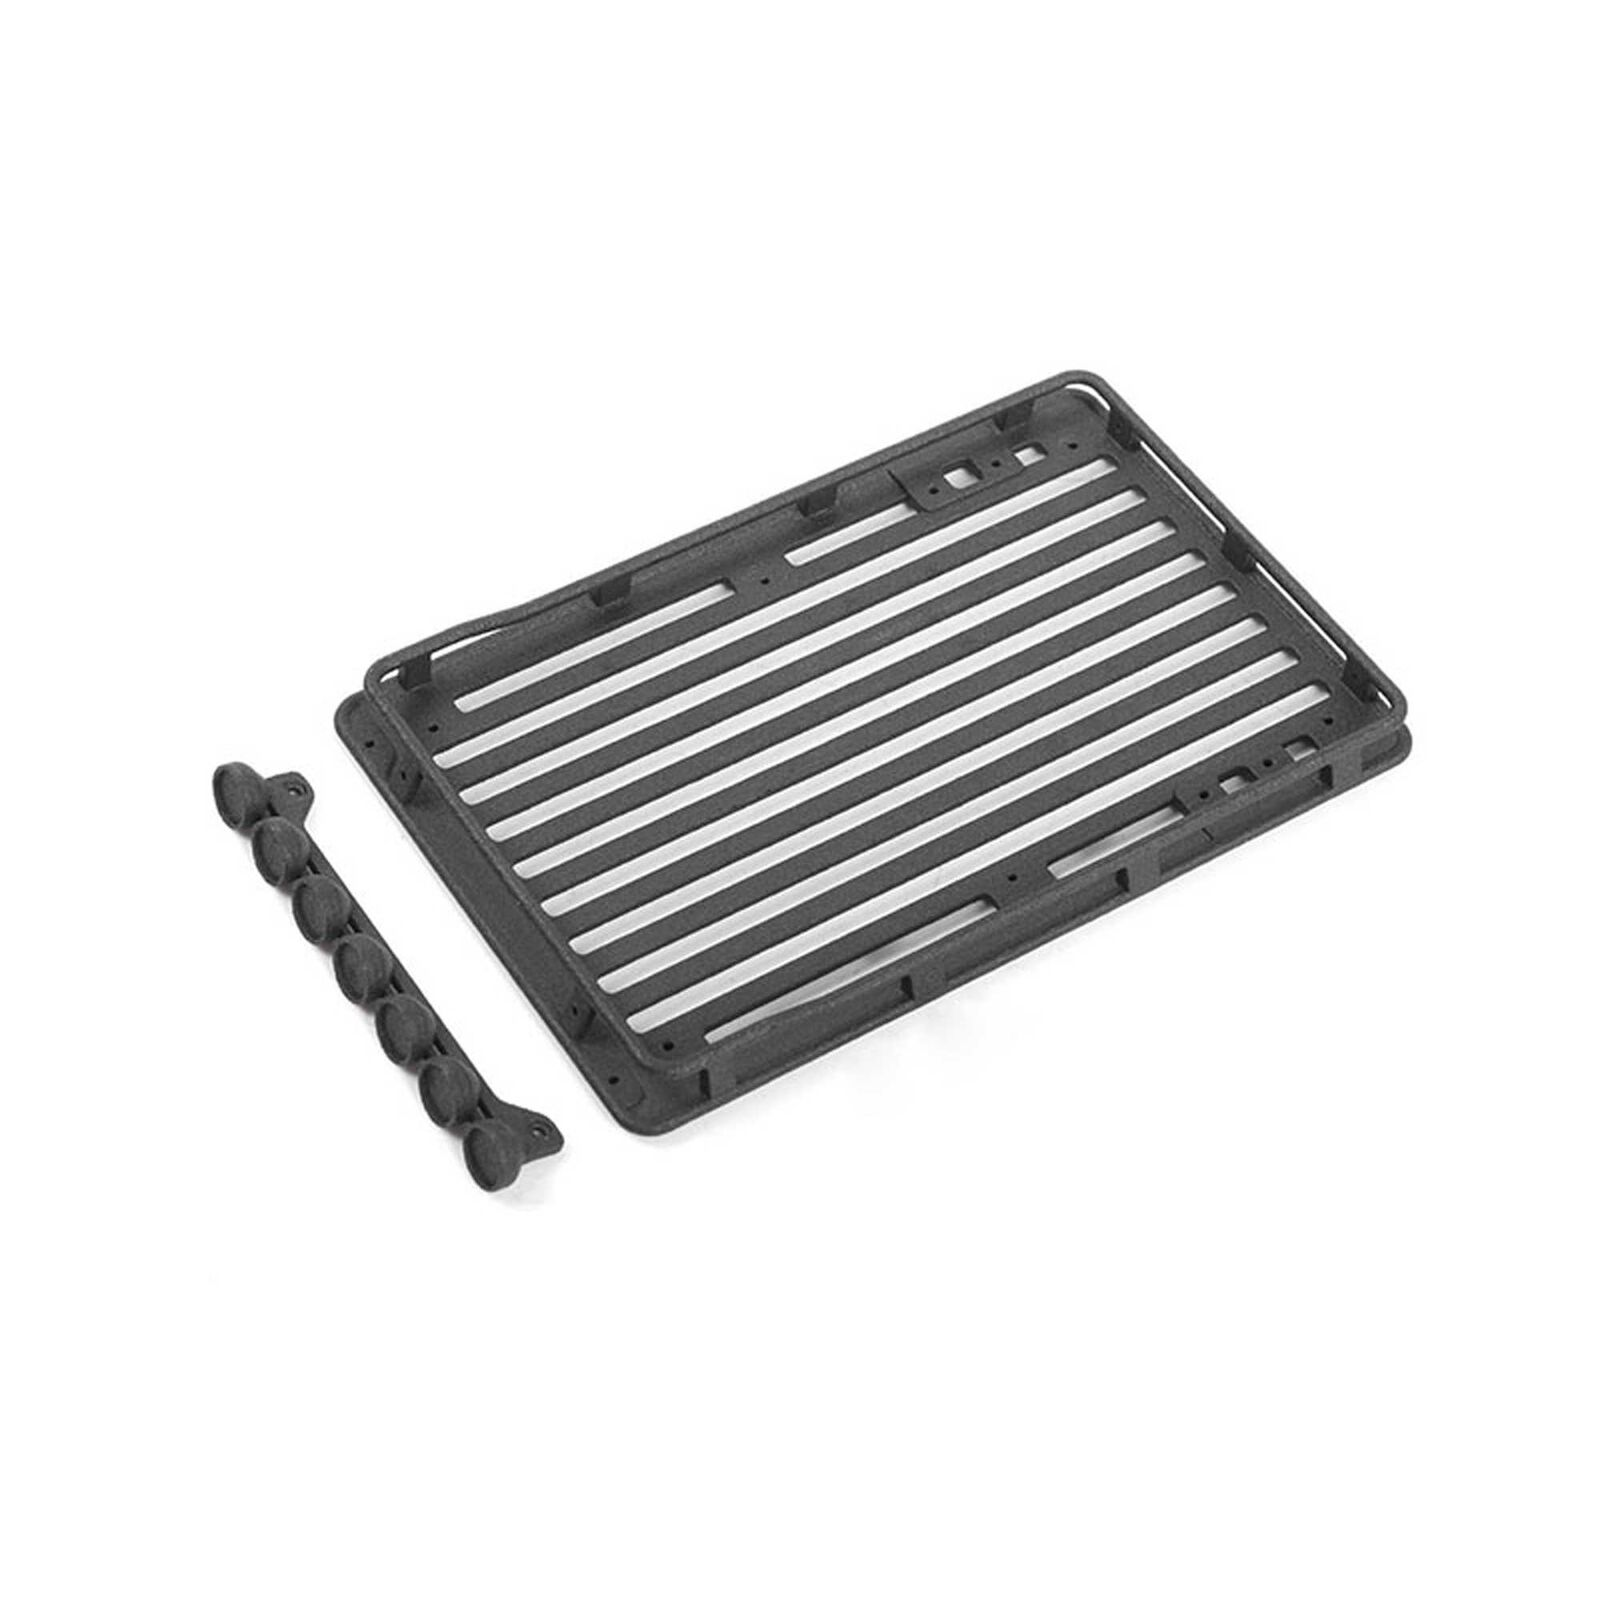 Roof Rack with Light Set: Axial SCX24 Wrangler